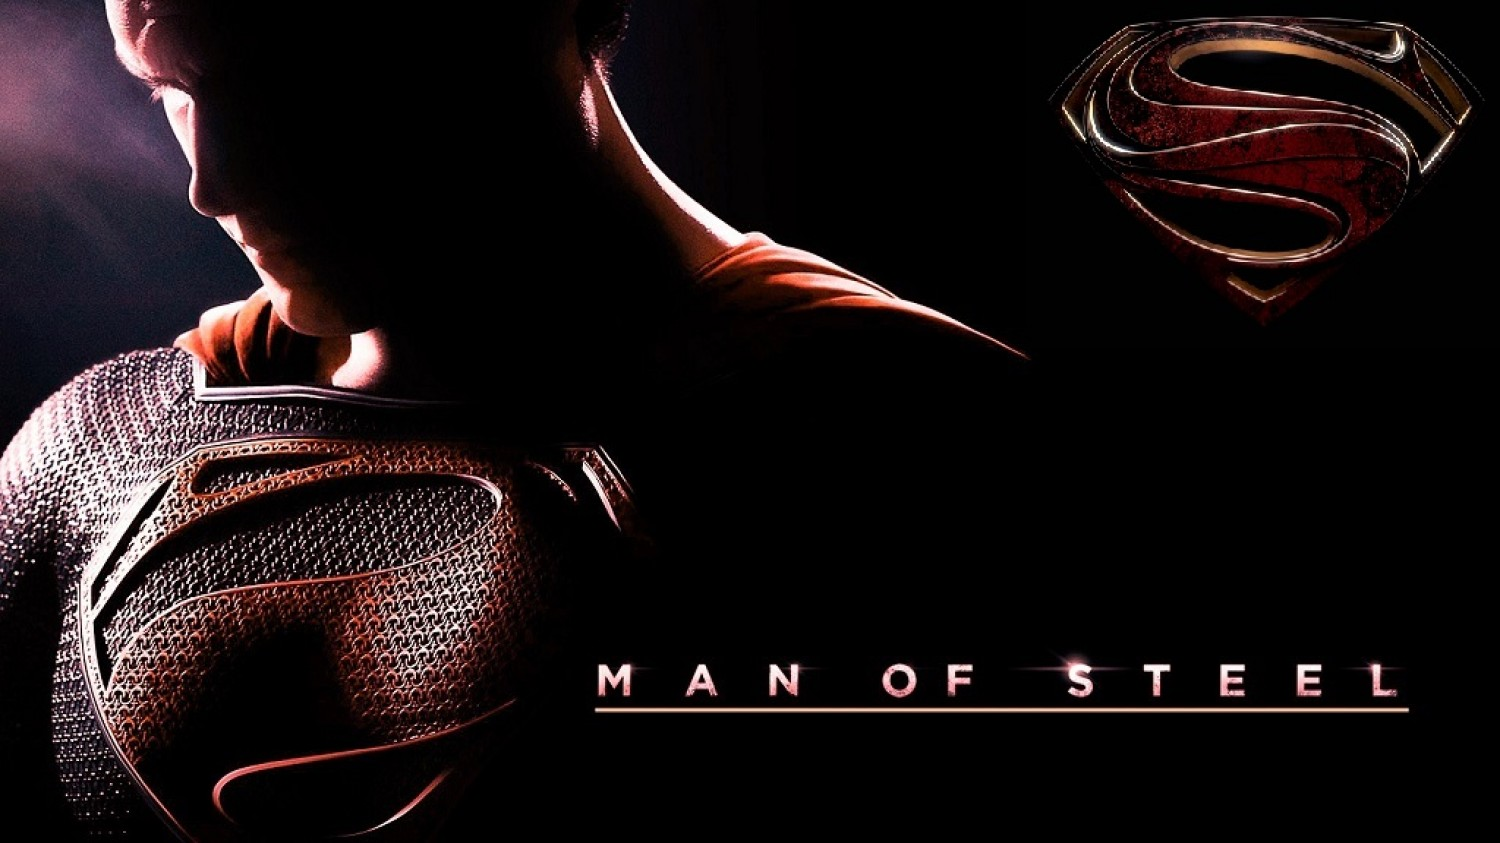 Man of Steel (2013) Director by Zack Snyder – Movie Review